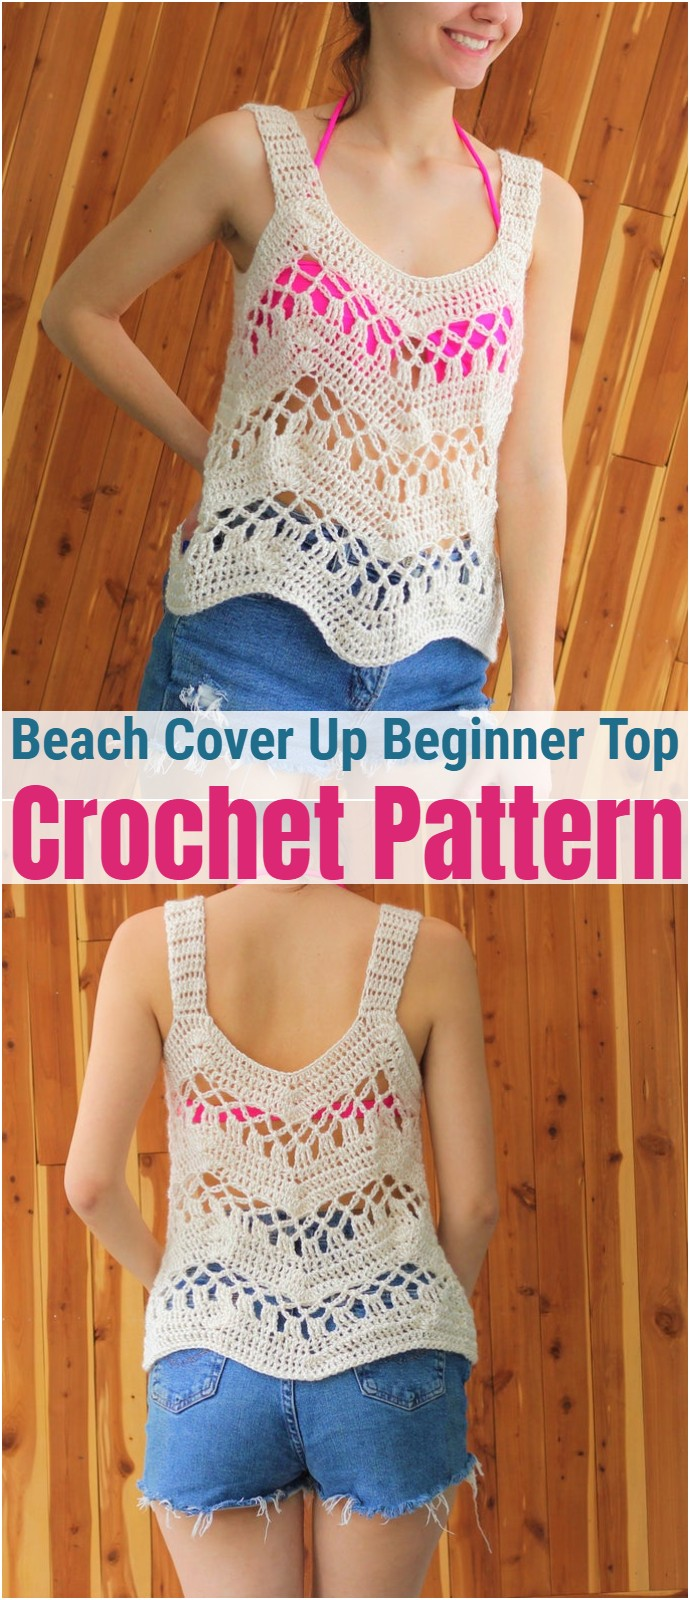 Beach Cover Up Beginner Top Pattern